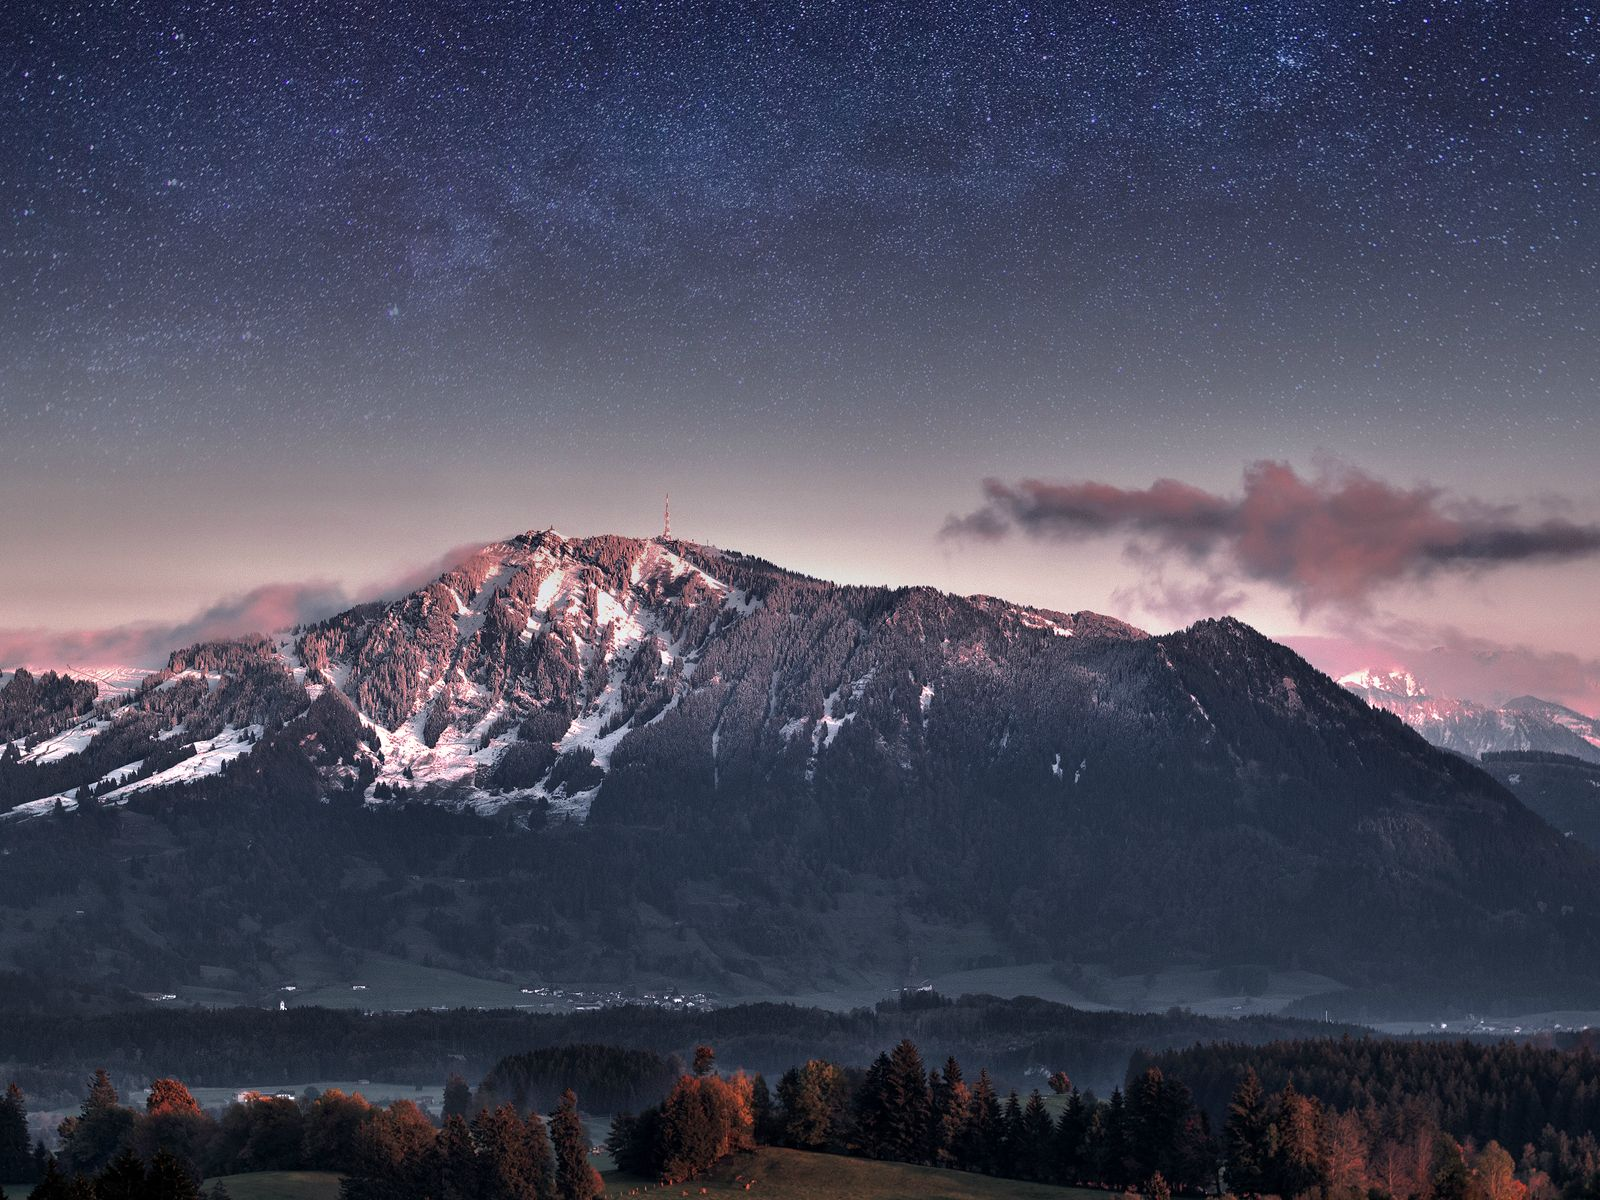 Germany Beautiful Night Sky